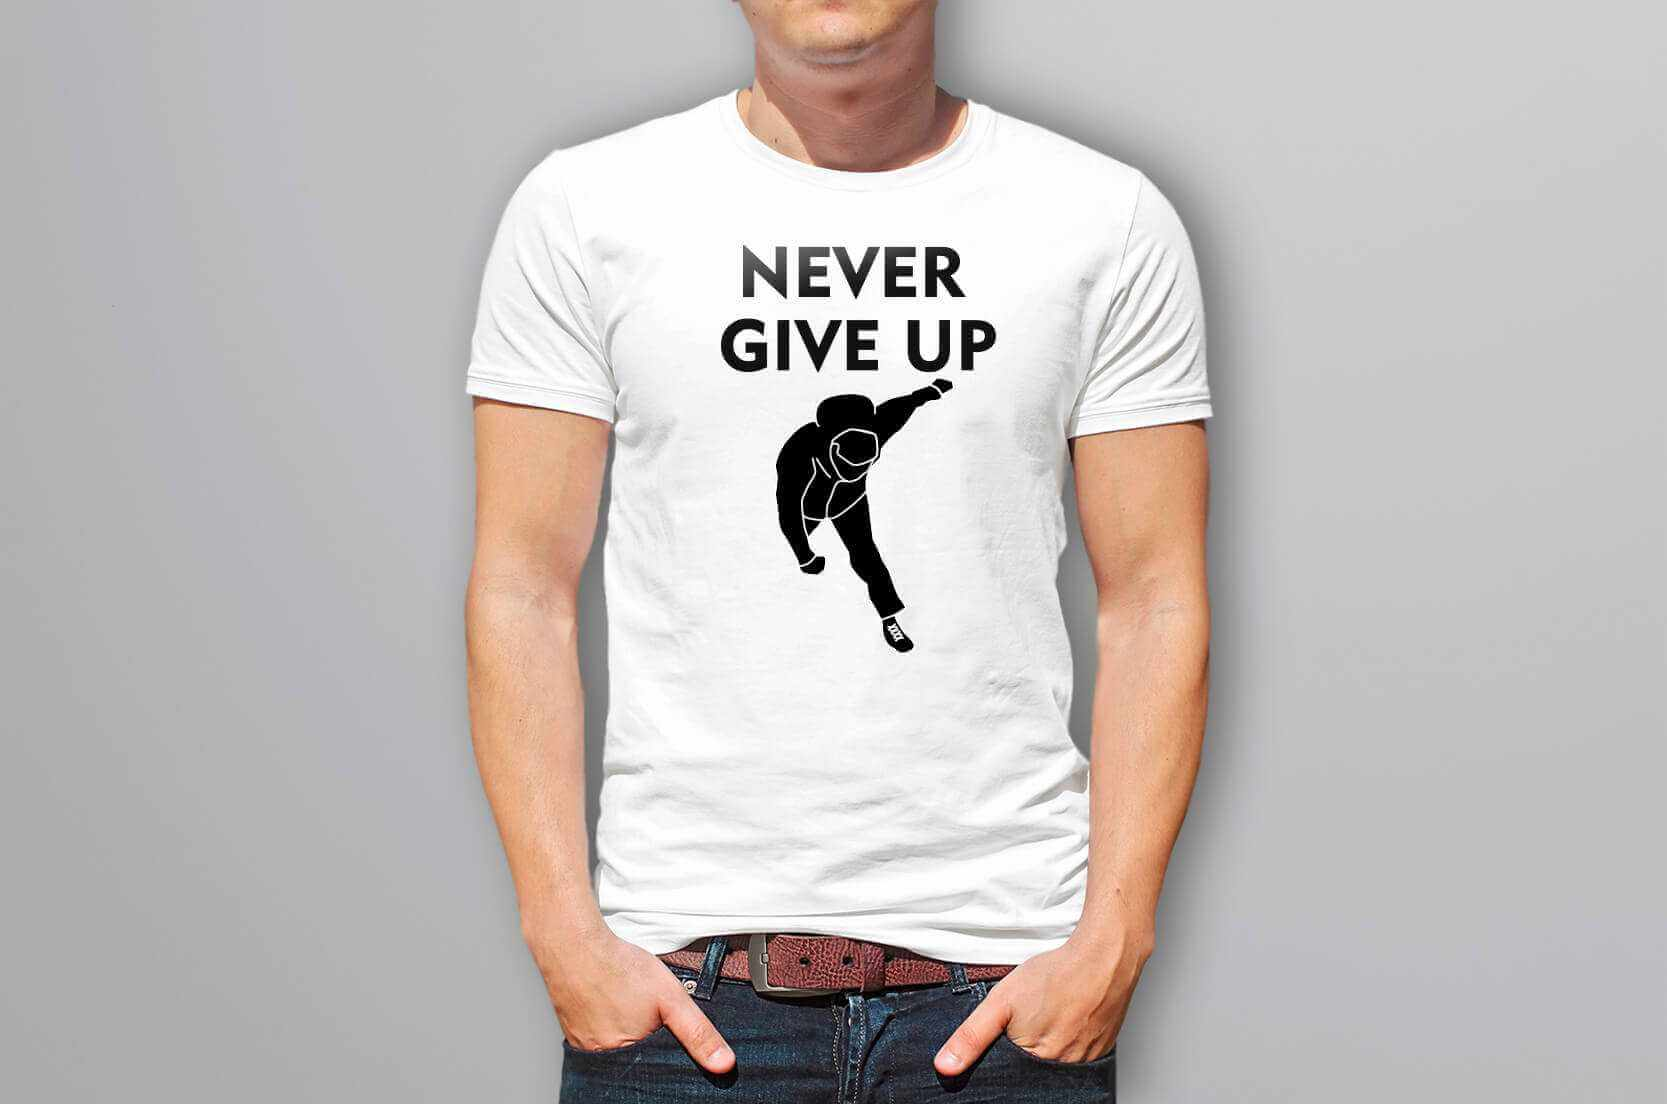 Never give up 永不放棄的圖片